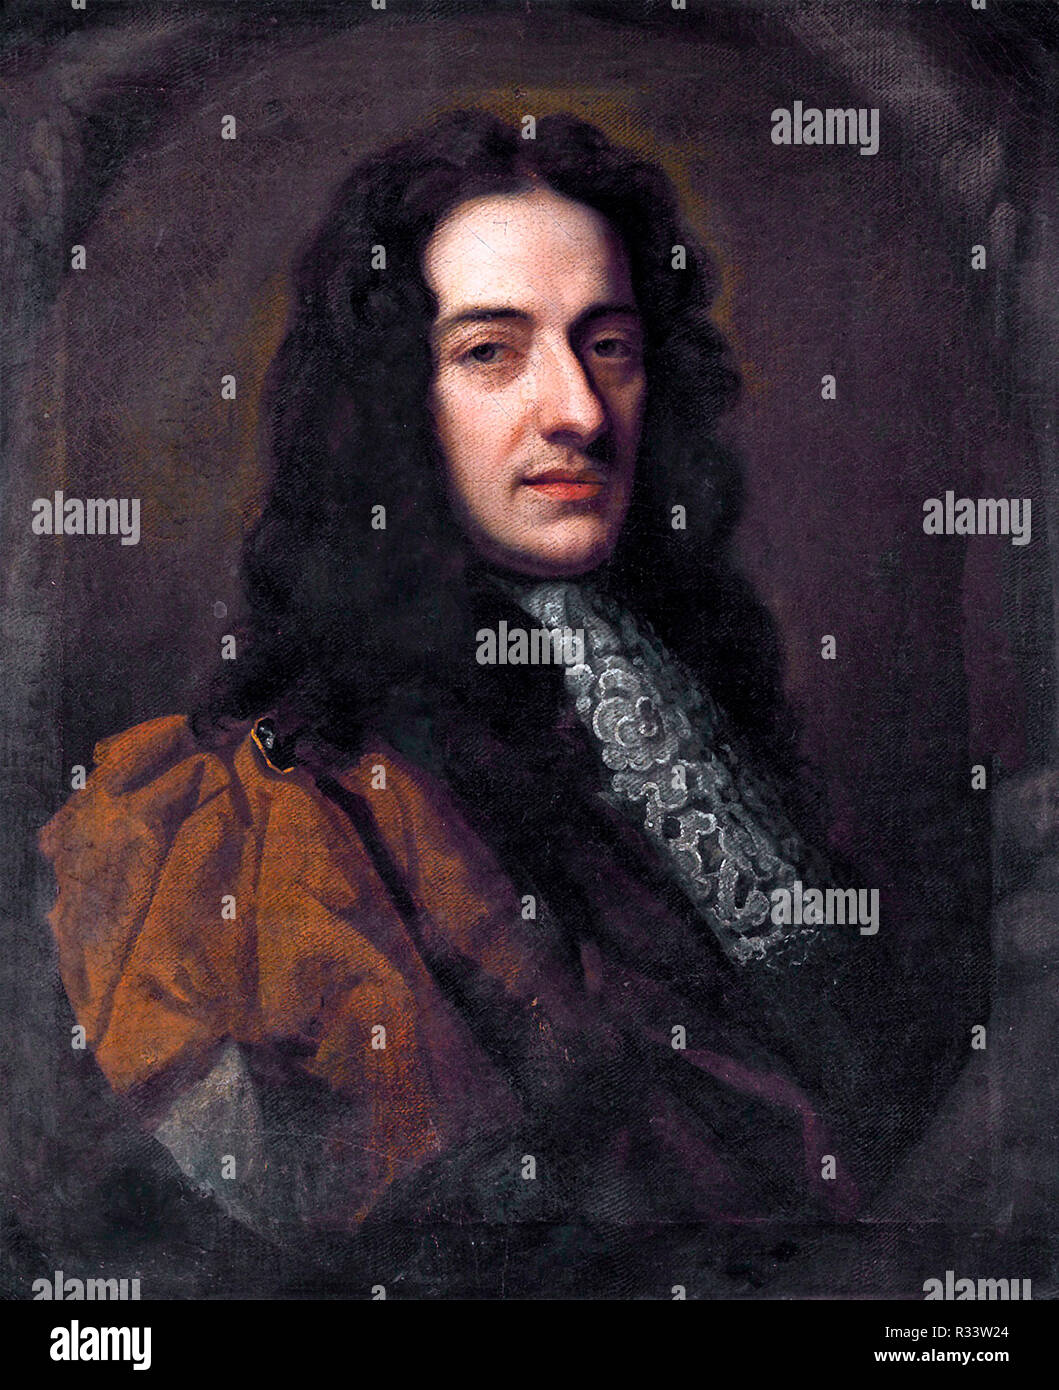 Nicola Matteis, was the earliest notable Italian Baroque violinist in London - Stock Image